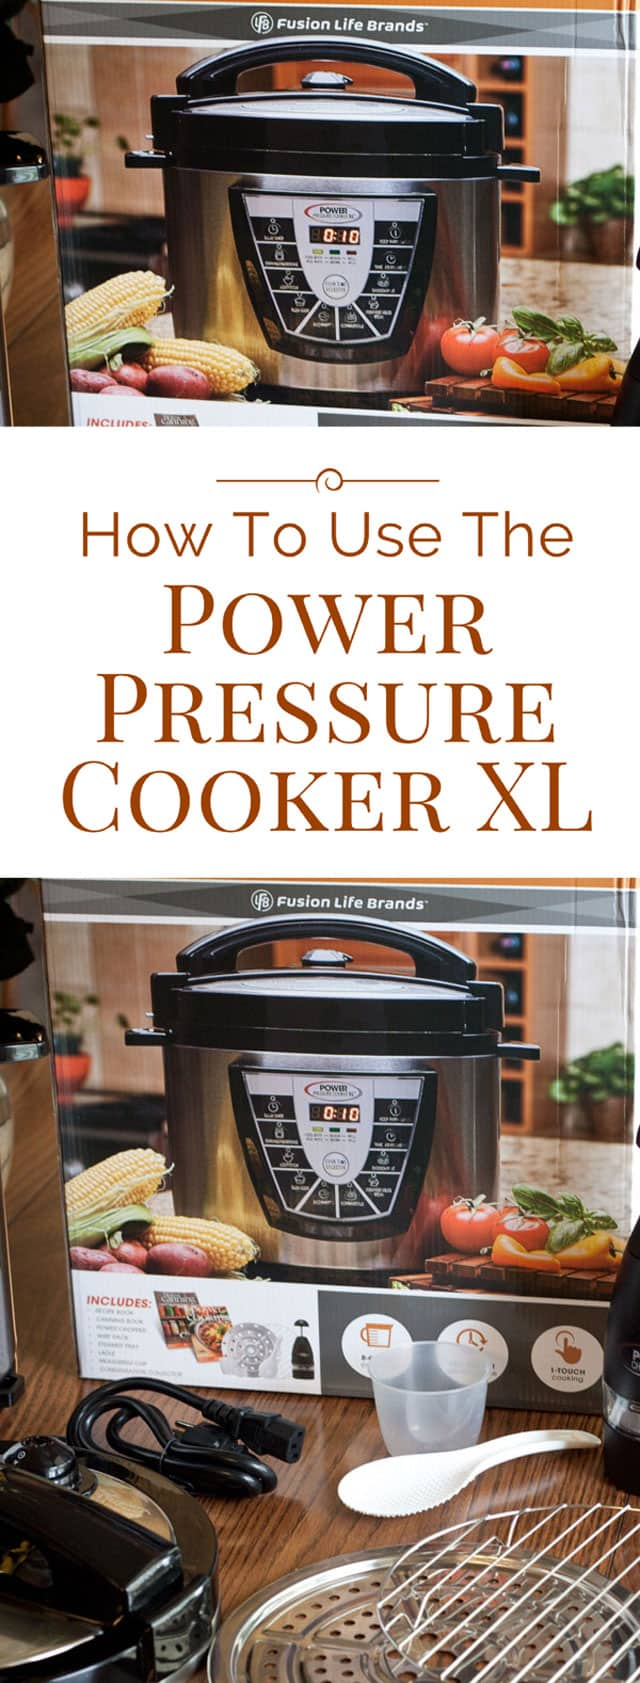 The Power Pressure Cooker XL is one of the best selling electric pressure cookers. Here's everything you need to know about how to use the Power Pressure Cooker XL